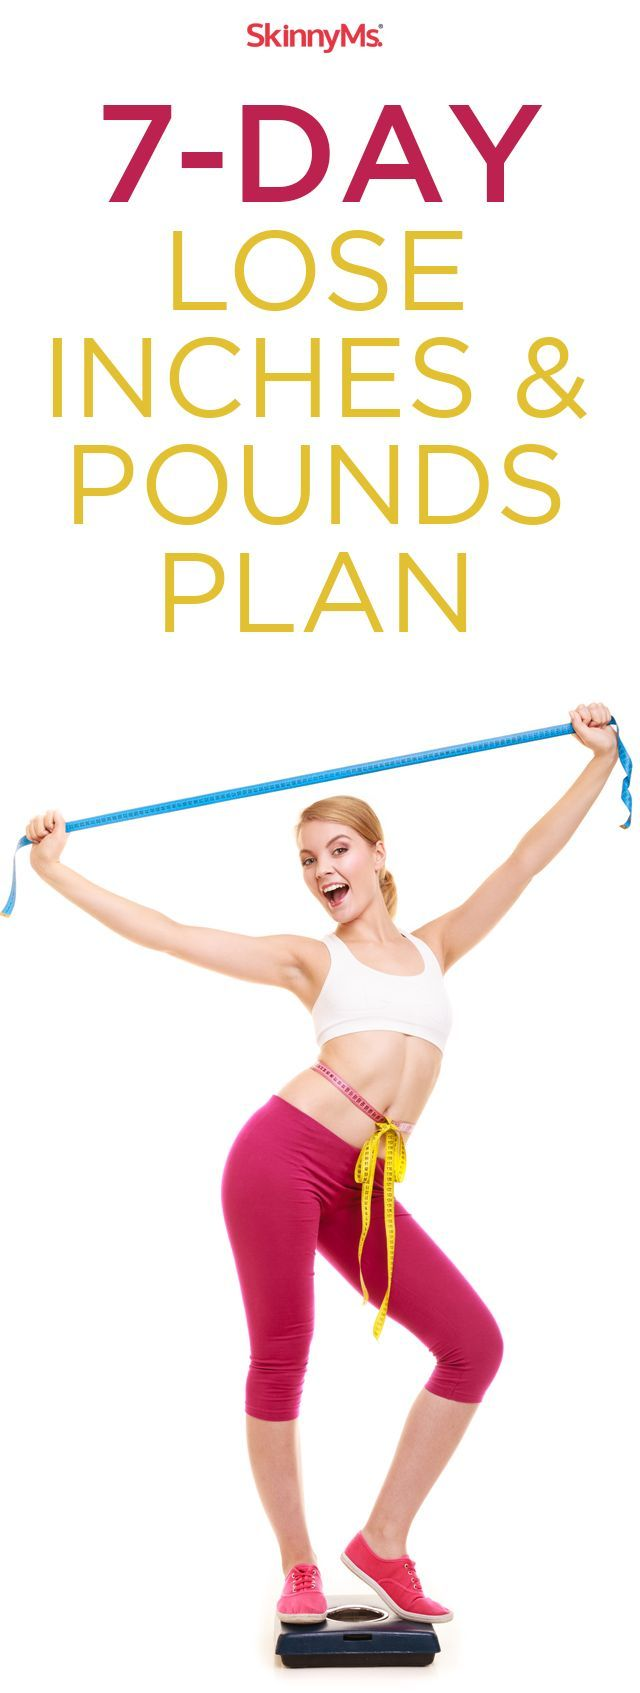 7-Day Lose Inches & Pounds Workout Plan #skinnyms